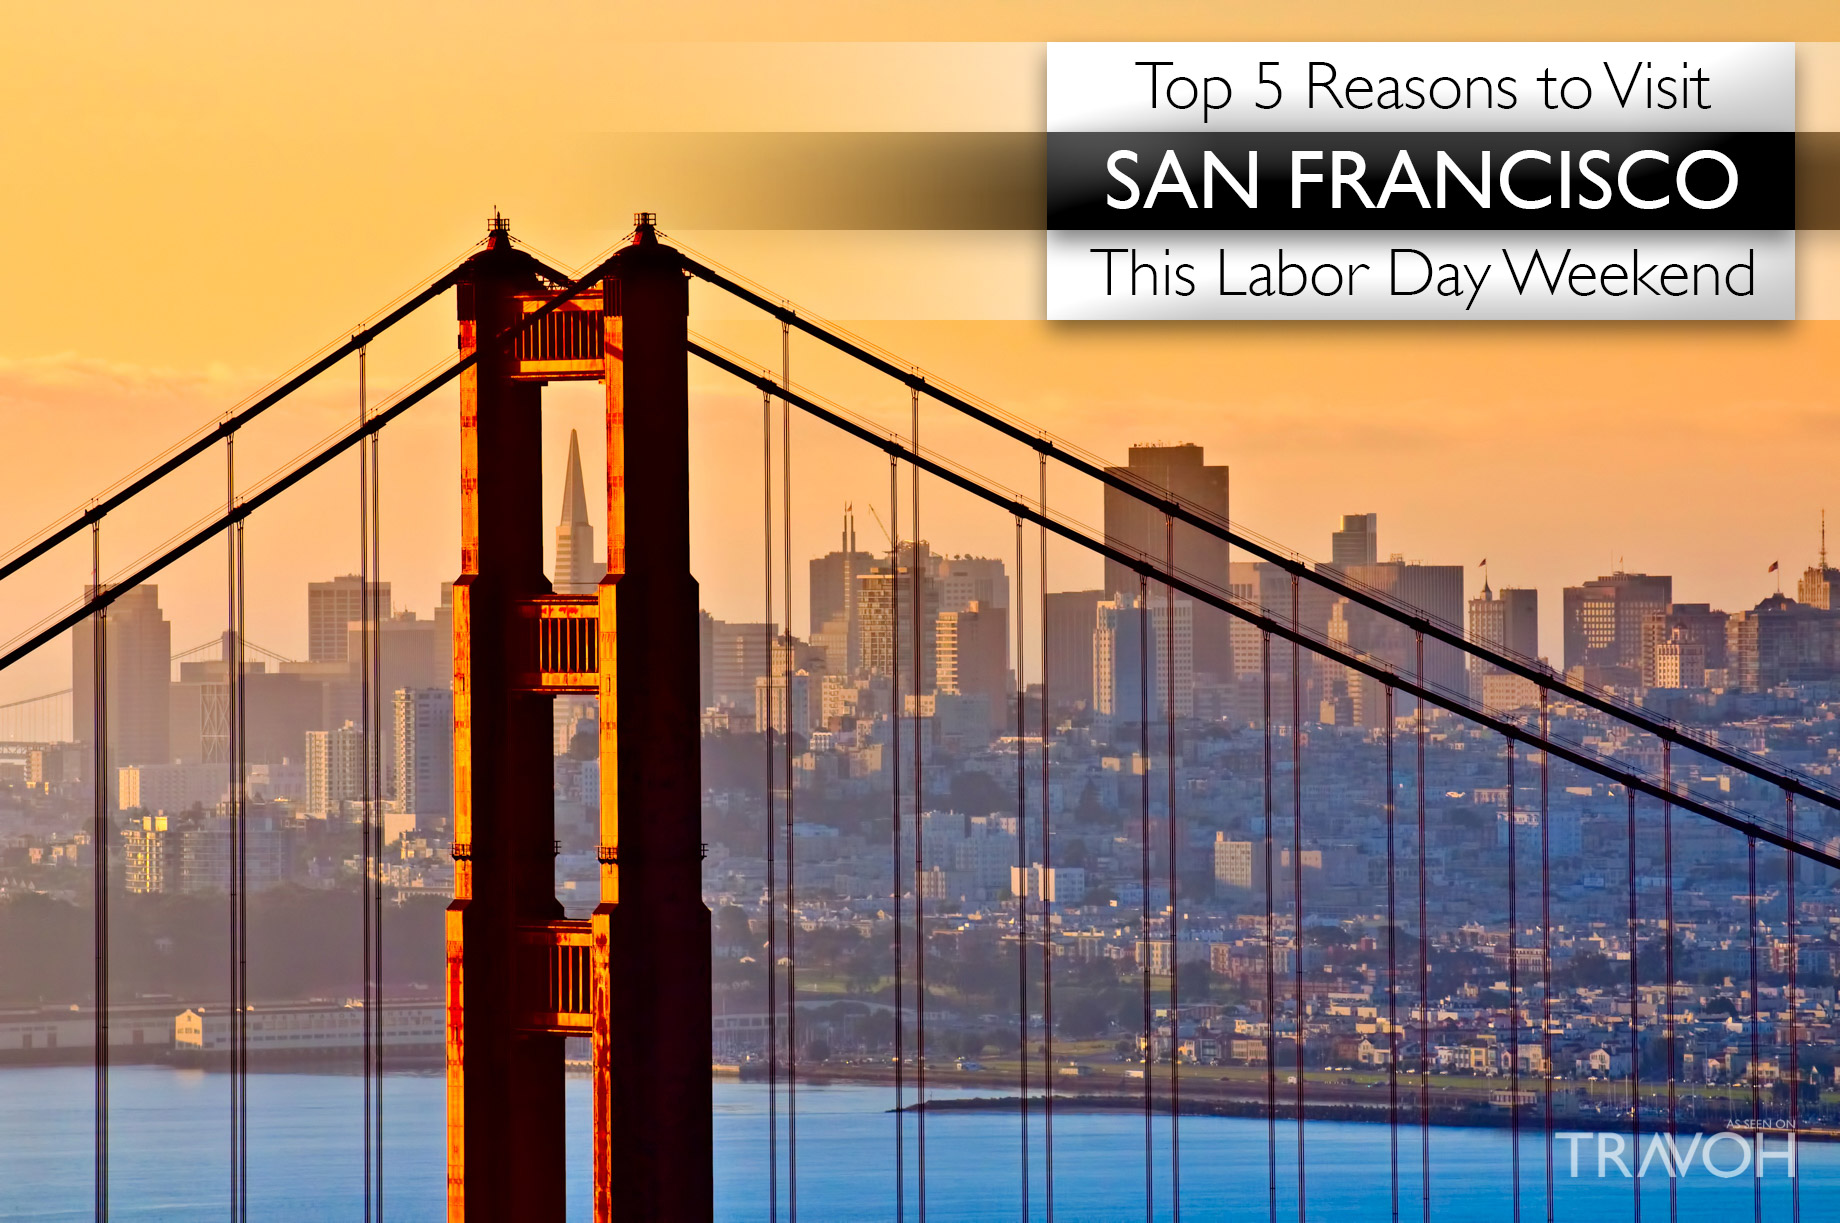 Top 5 Reasons to Visit San Francisco this Labor Day Weekend